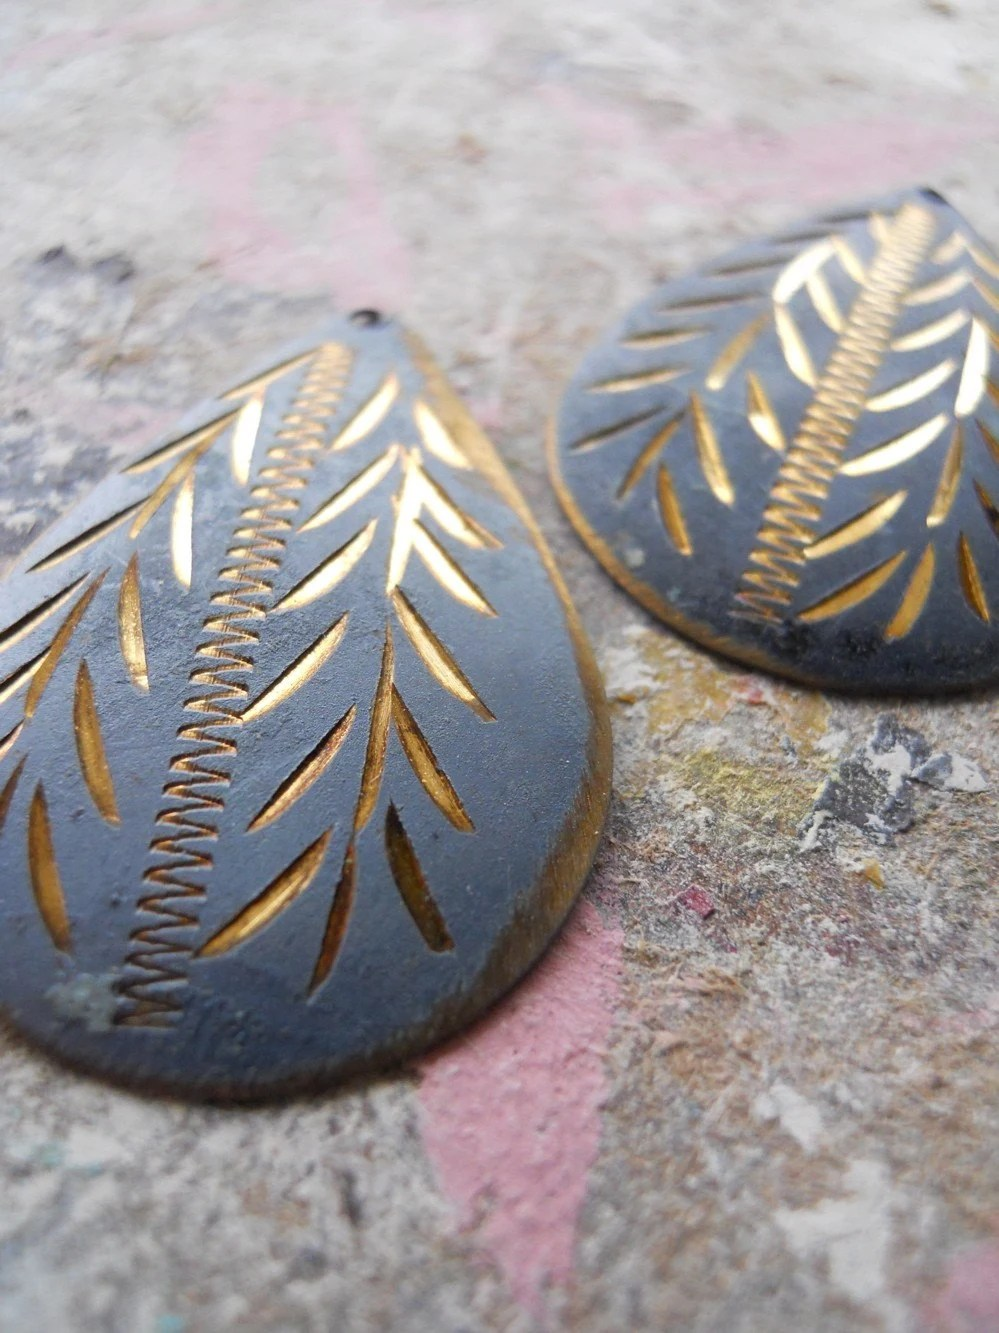 Vintage Incised Gray and Gold Findings from India - Painted Metal Intricately Designed Pendants or Charms